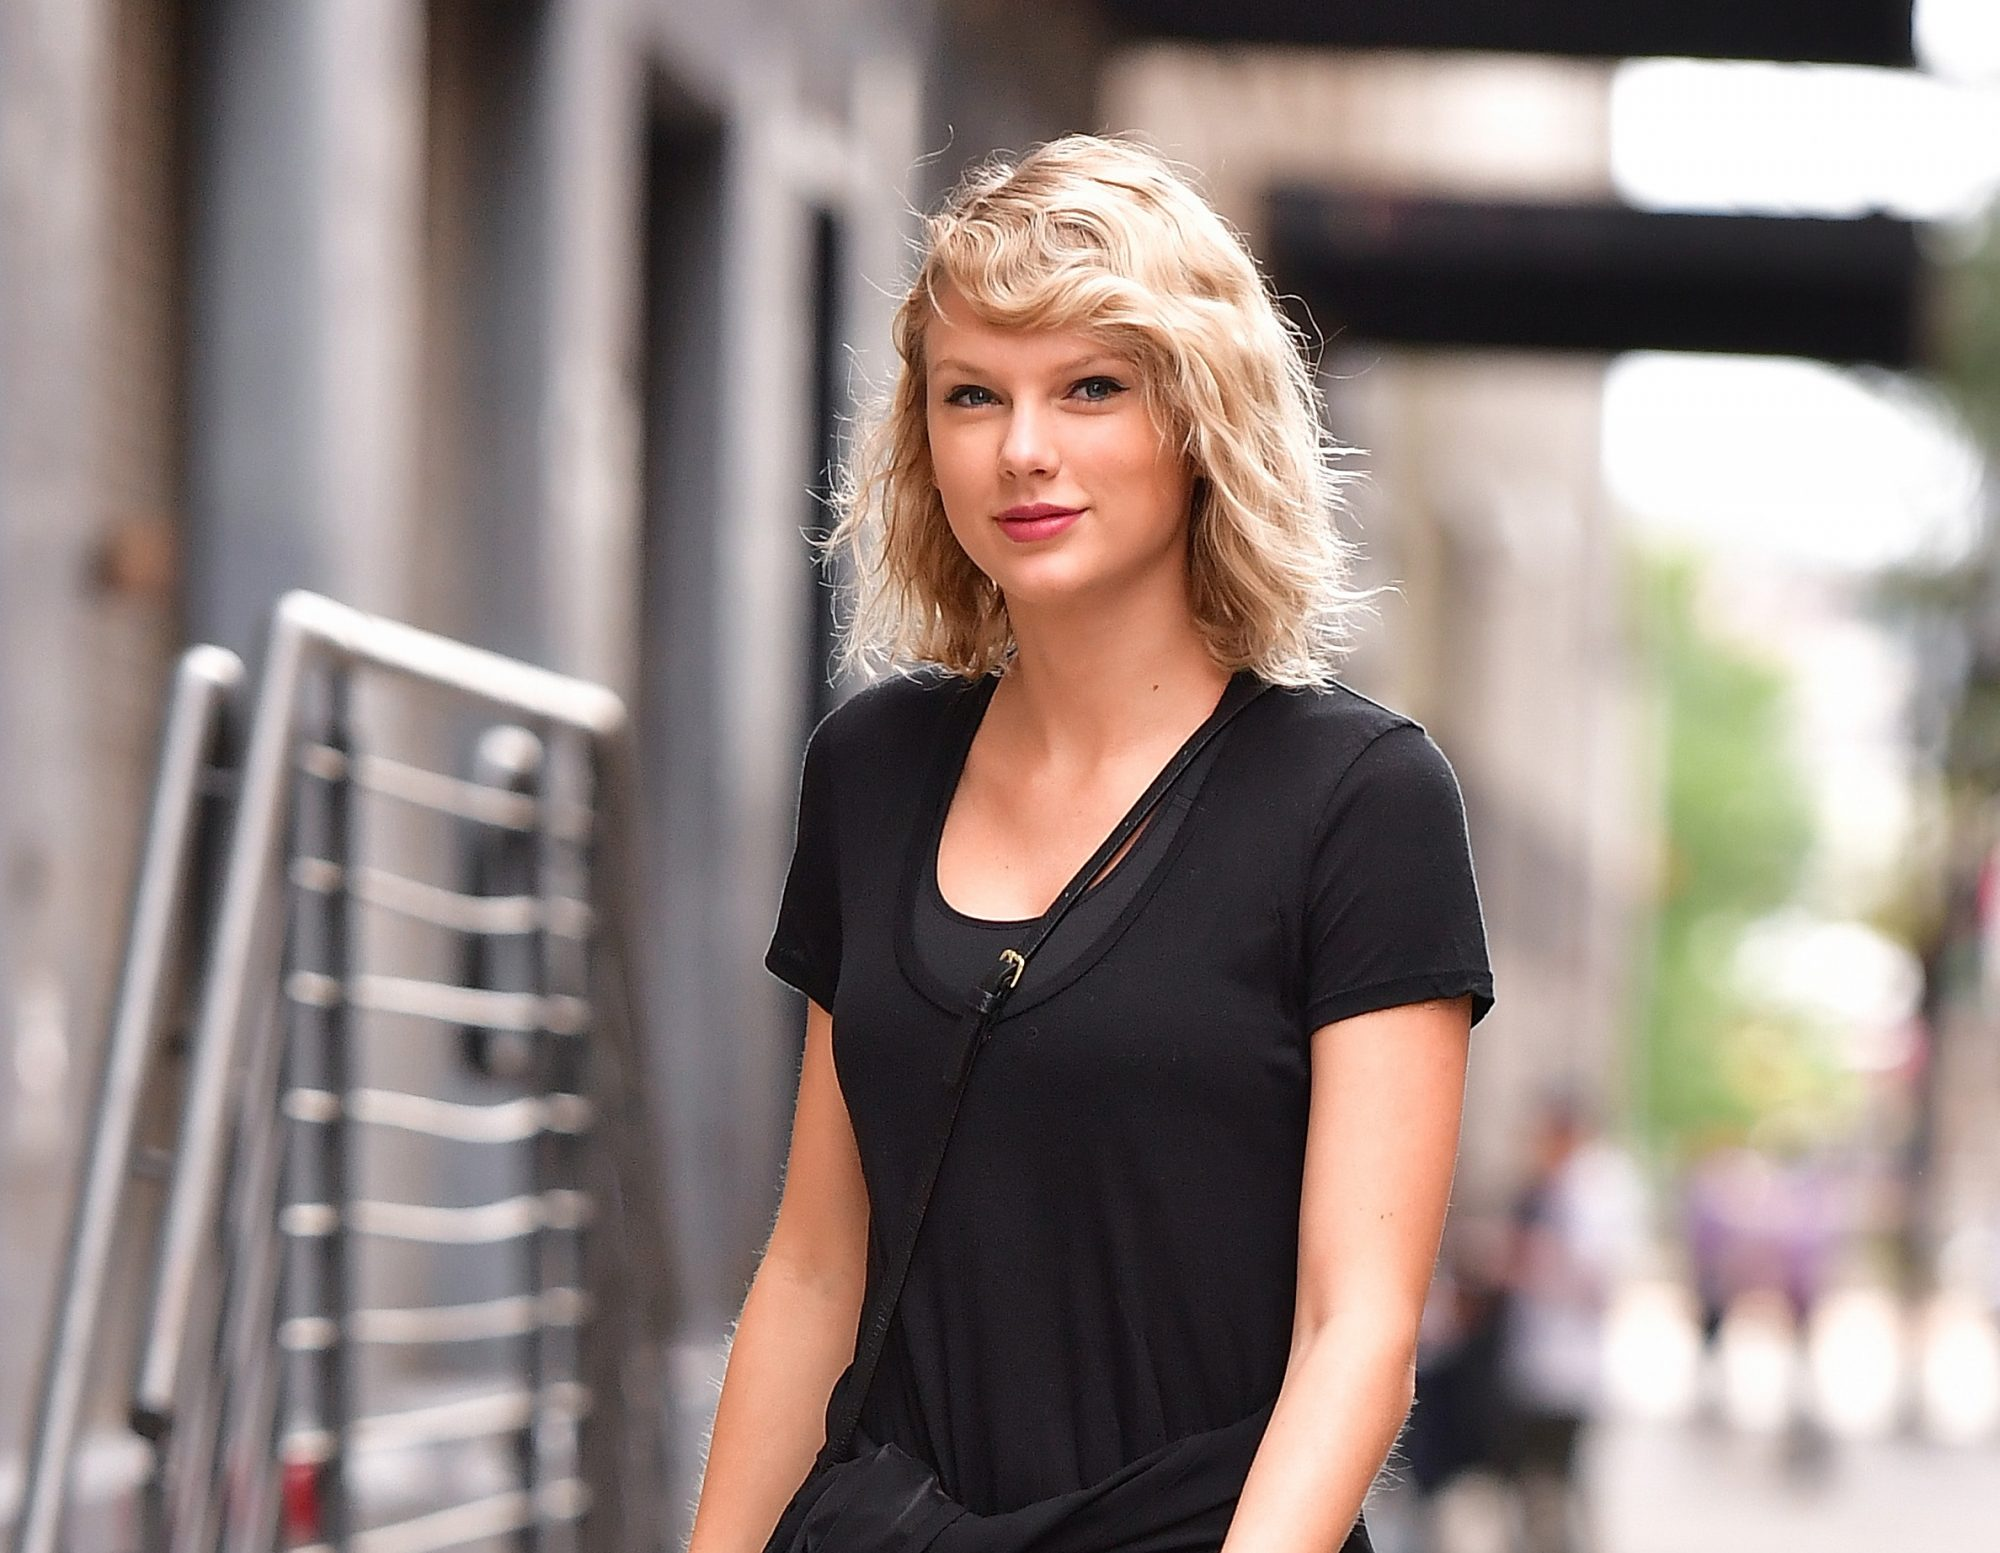 tswift out in NYC